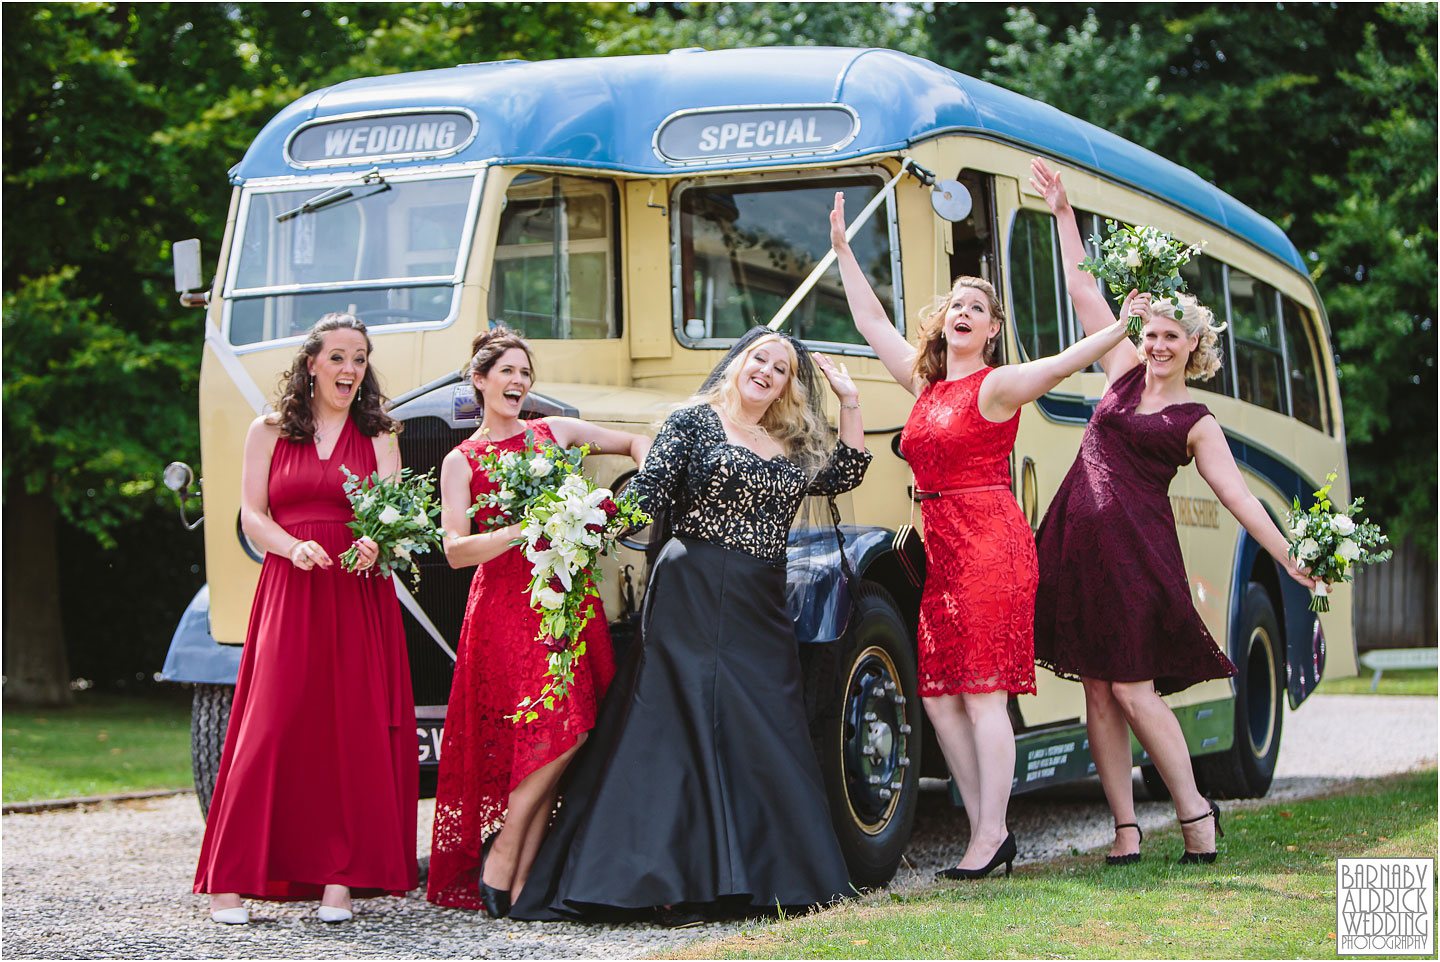 Fun photo of a bride in black wedding dress by a vintage bus, Amazing Yorkshire Wedding Photos, Best Yorkshire Wedding Photos 2018